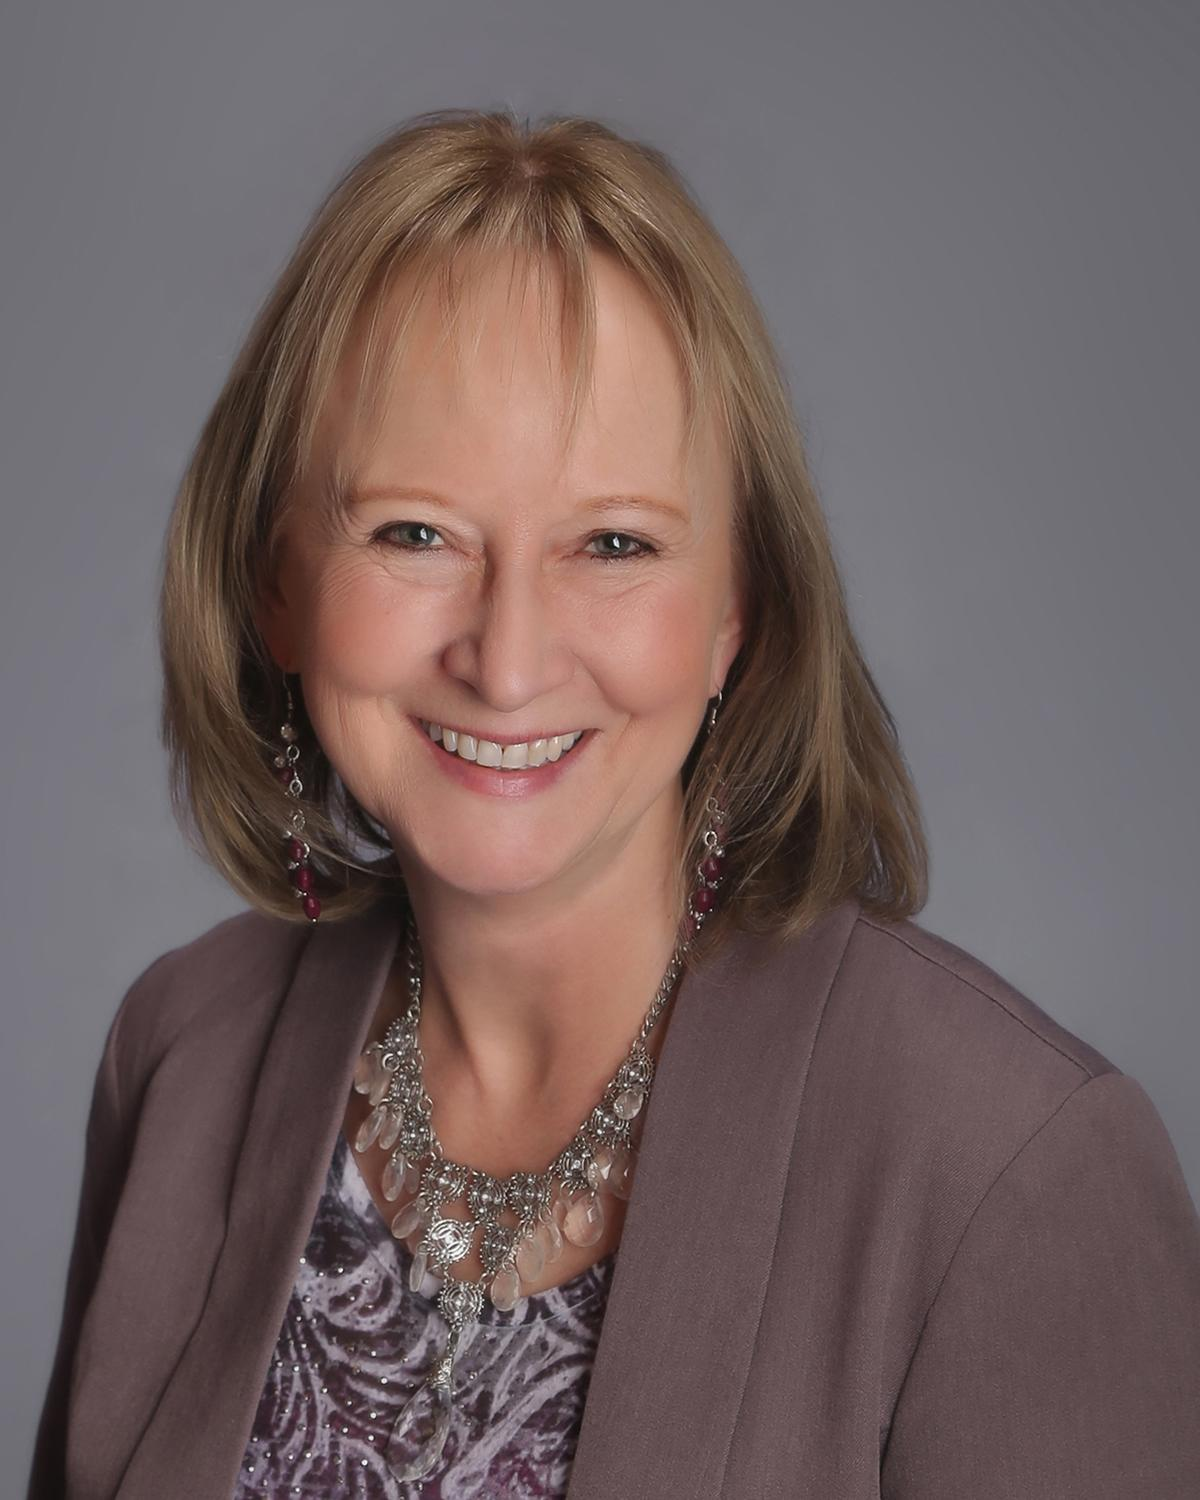 BECKY V. BARRY Financial Professional & Insurance Agent